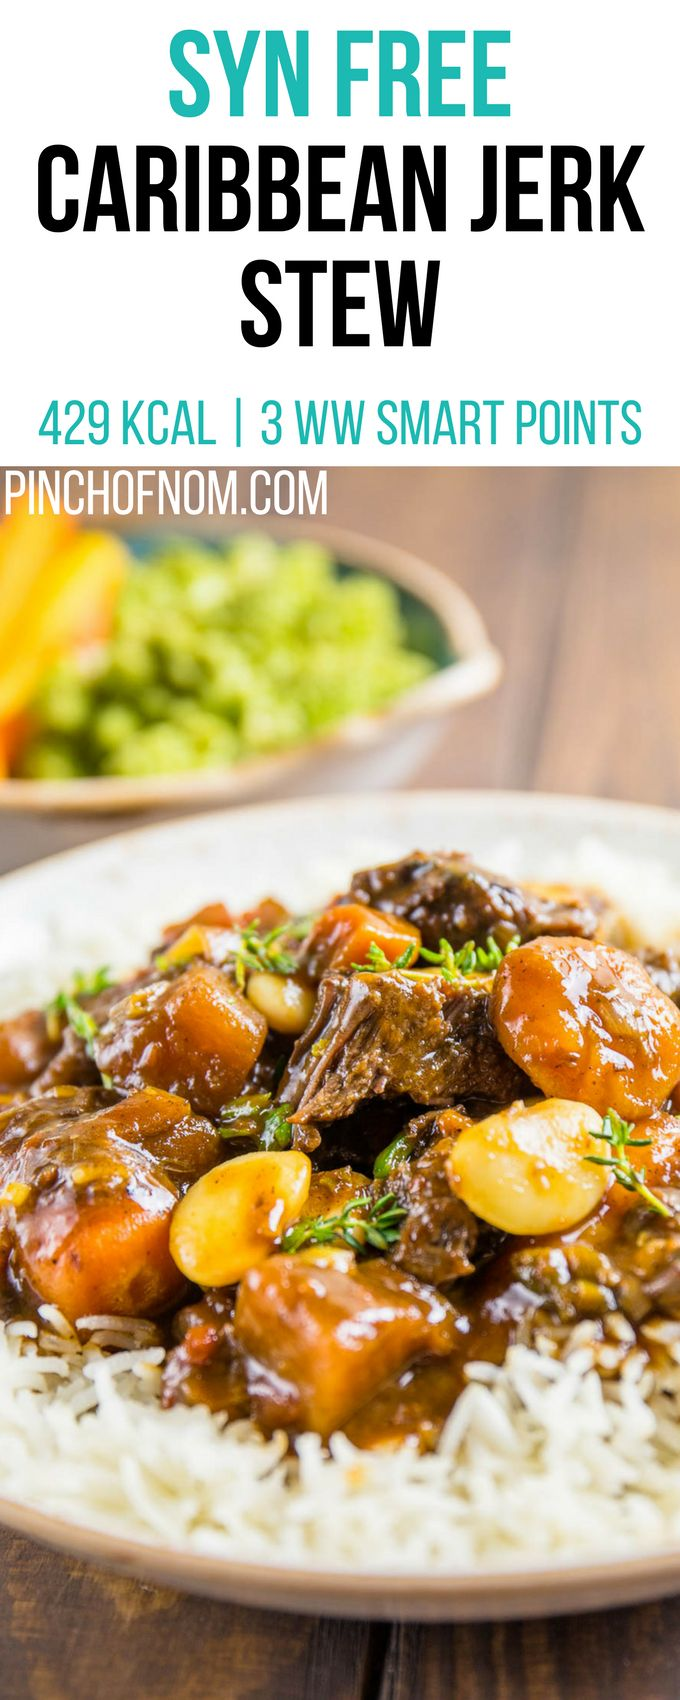 Syn Free Caribbean Jerk Stew | Pinch Of Nom Slimming World Recipes     429 kcal | Syn Free | 3 Weight Watchers Smart Points